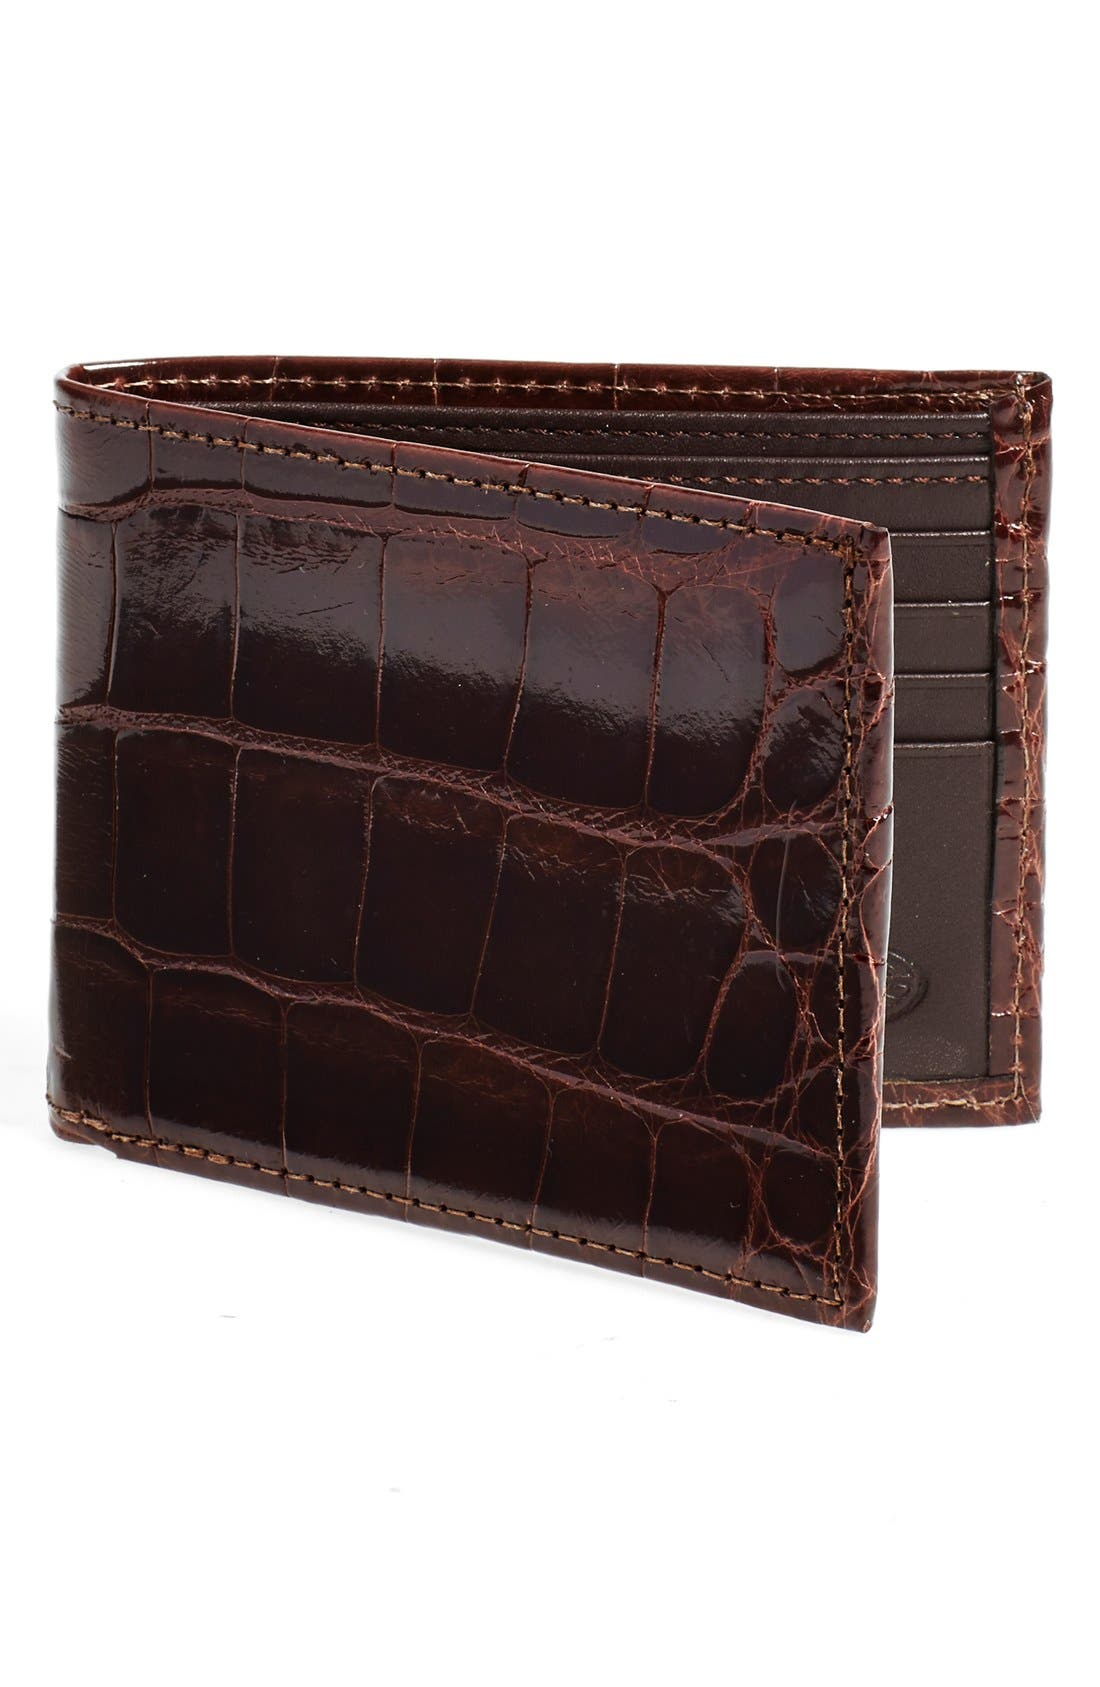 Alternate Image 1 Selected - Torino Belts Genuine Alligator Wallet